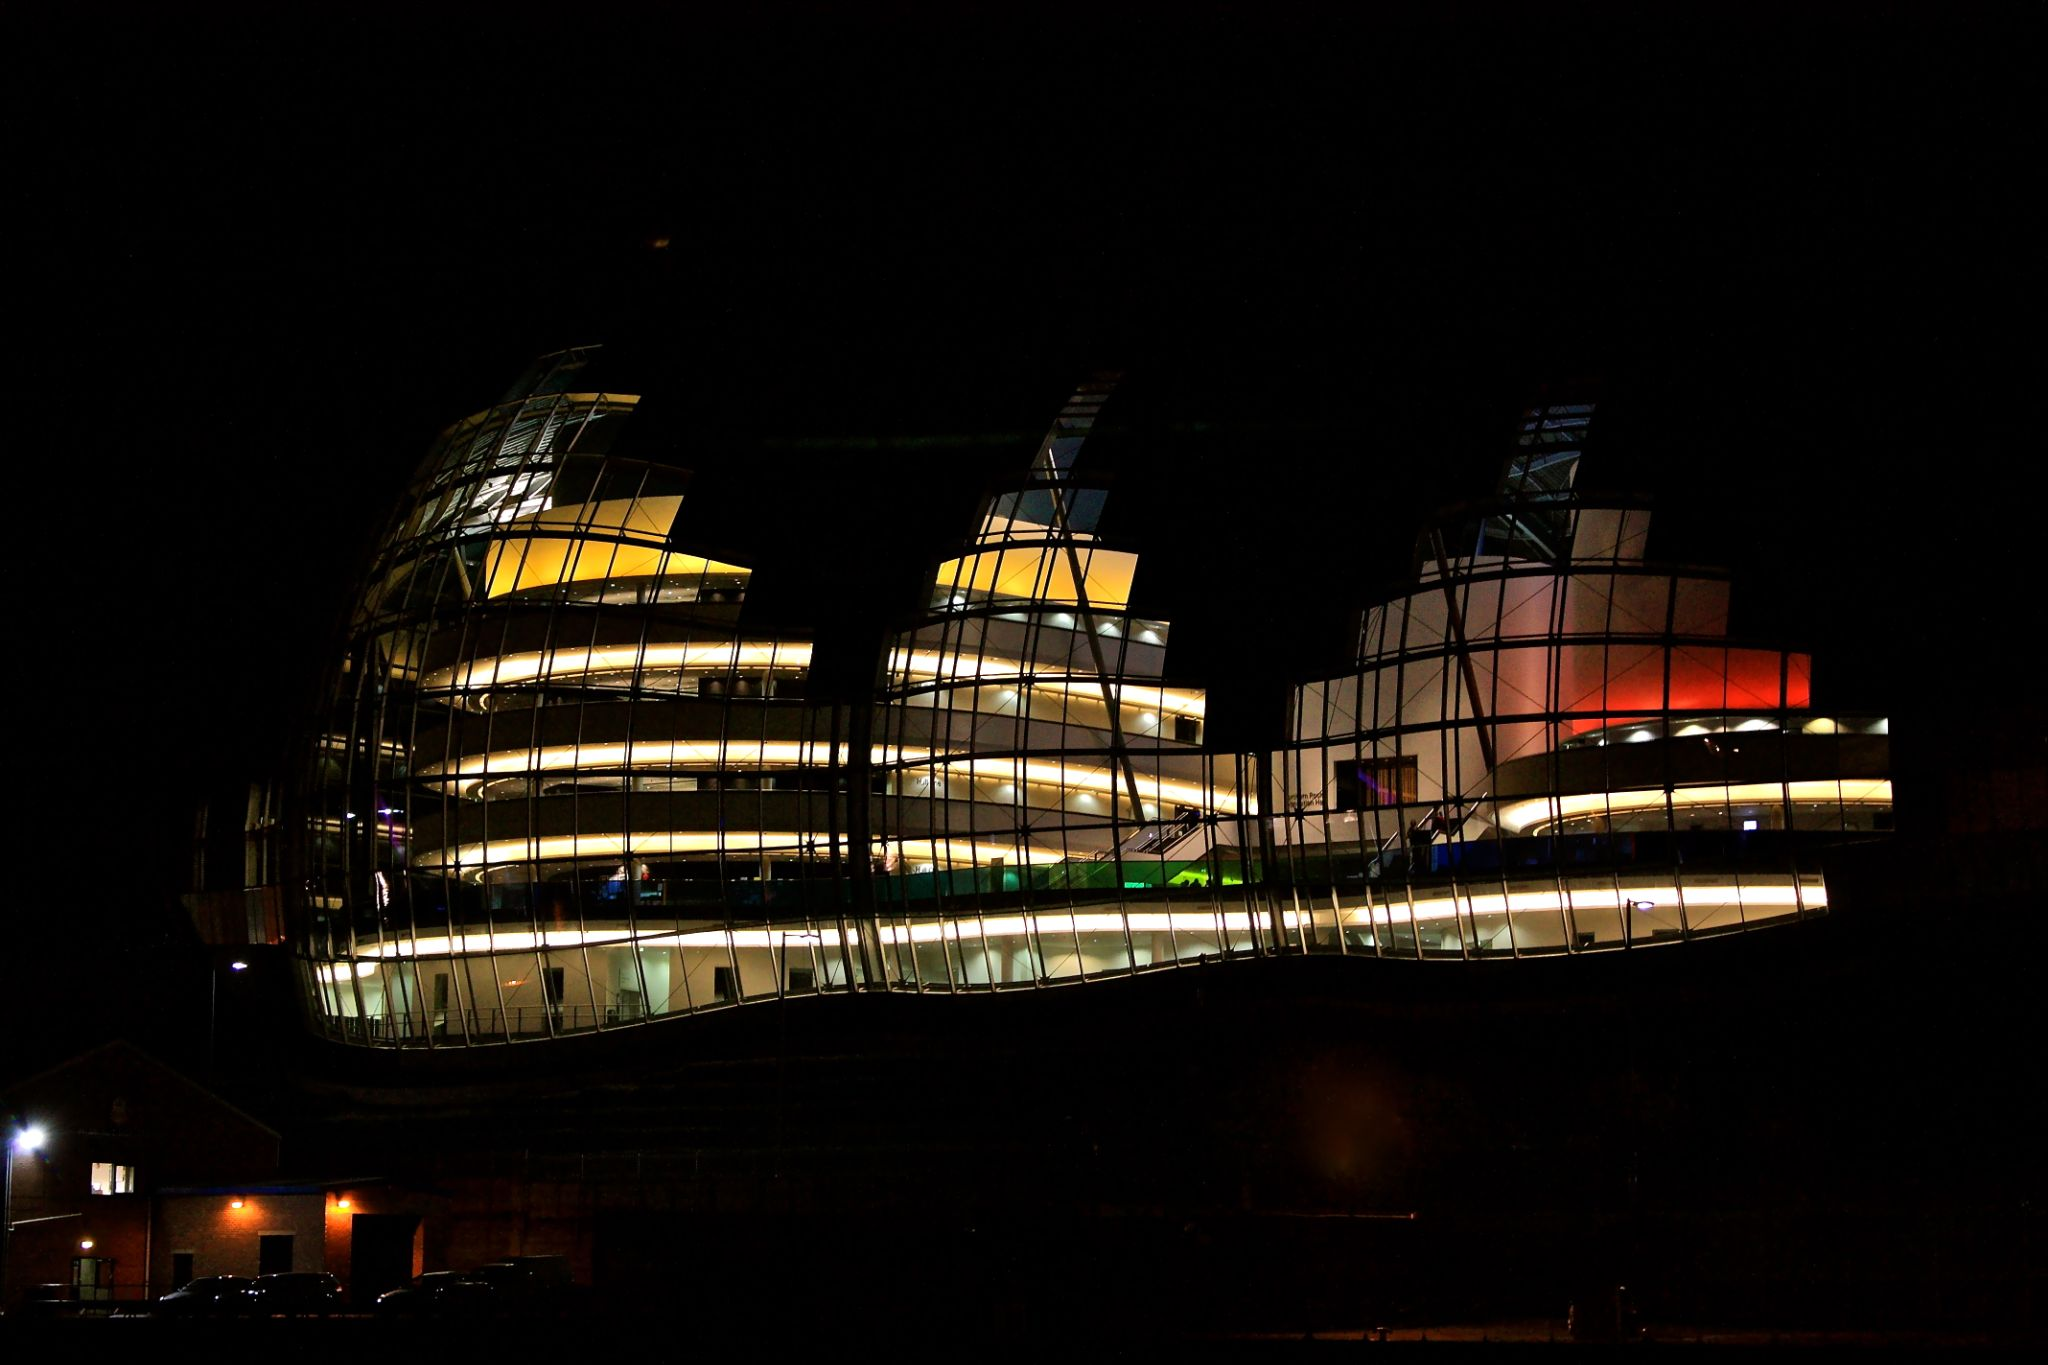 Newcastle_14 The Sage Music Venue at night by Randy Dorman